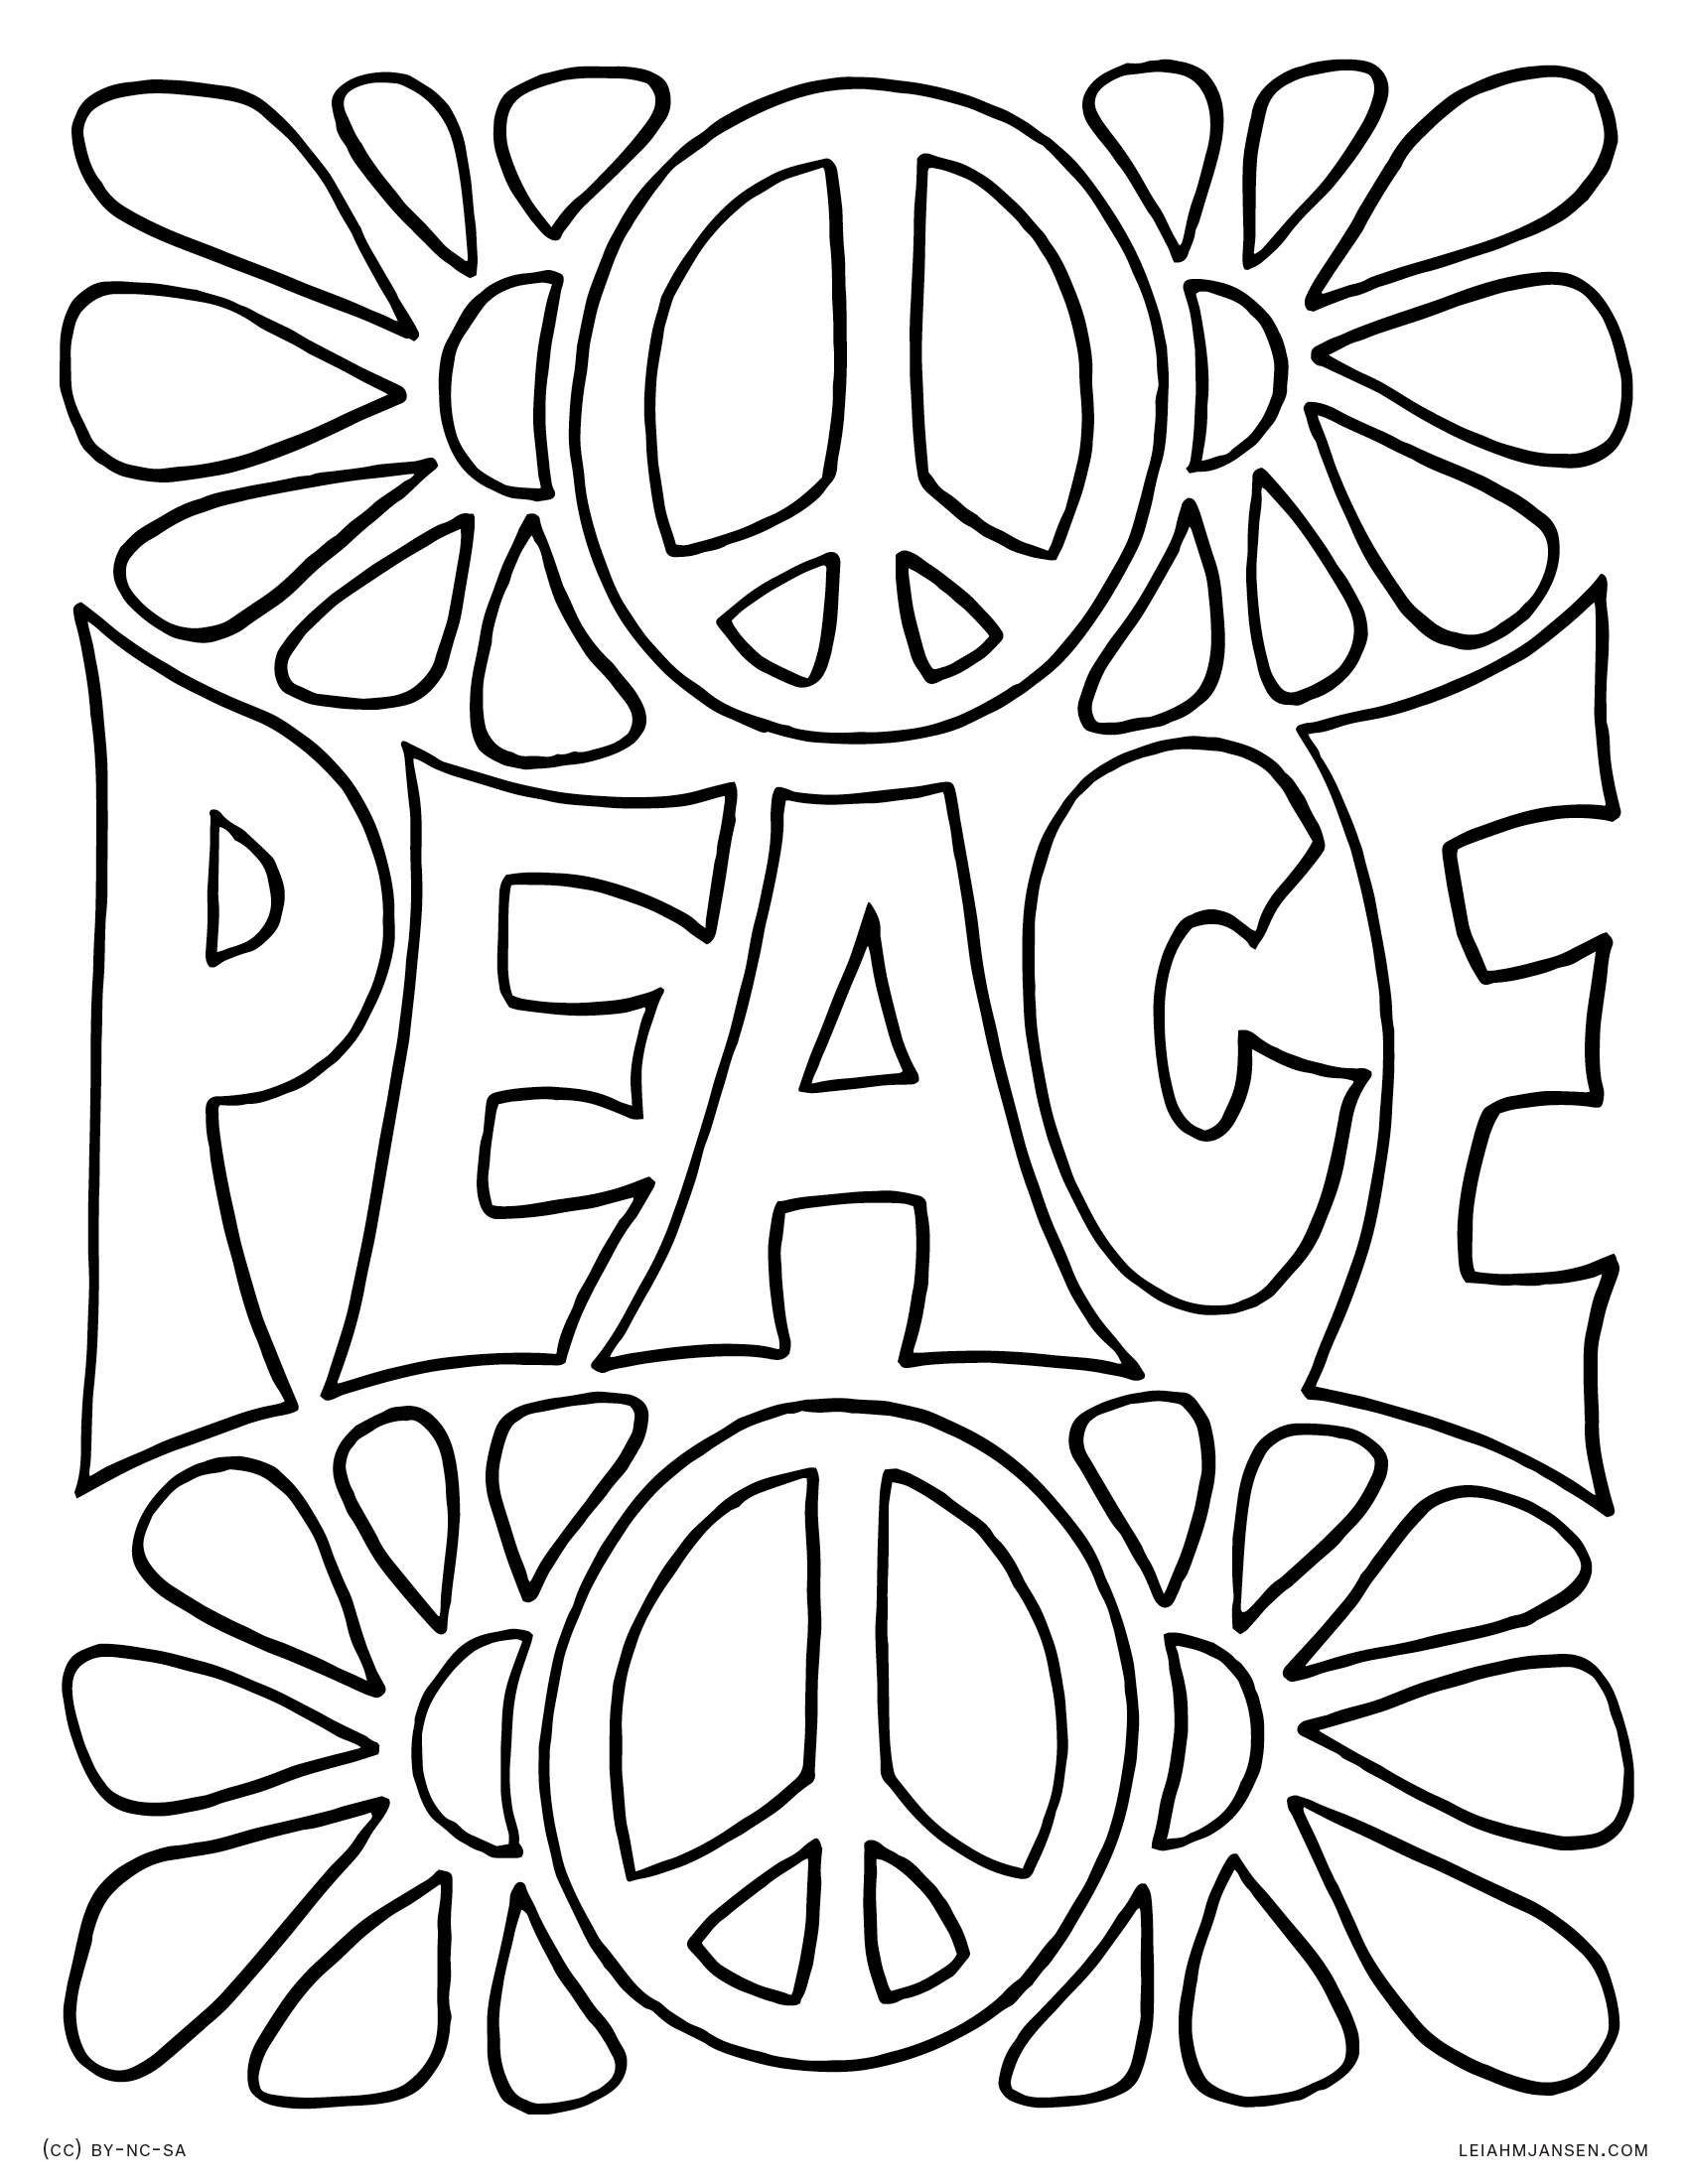 Coloring pages for Photo to coloring page